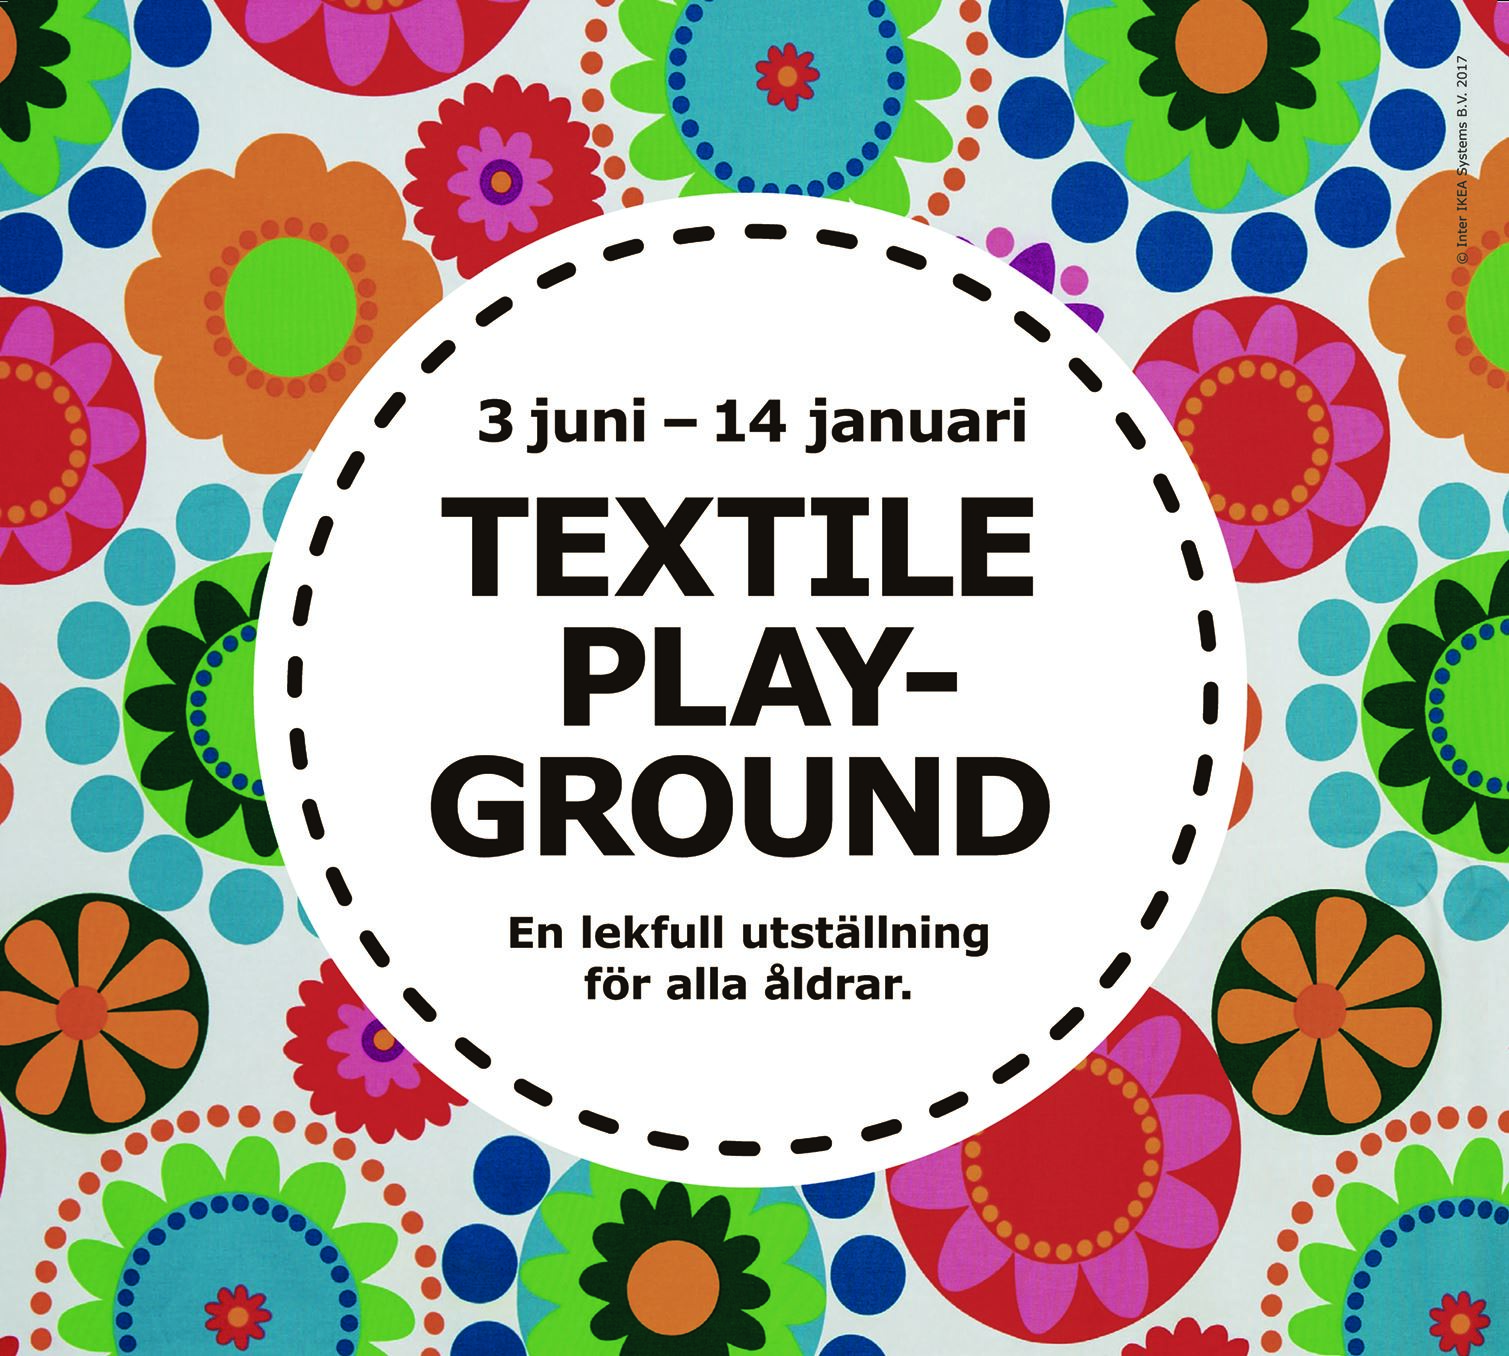 Exhibition - Textile Playground